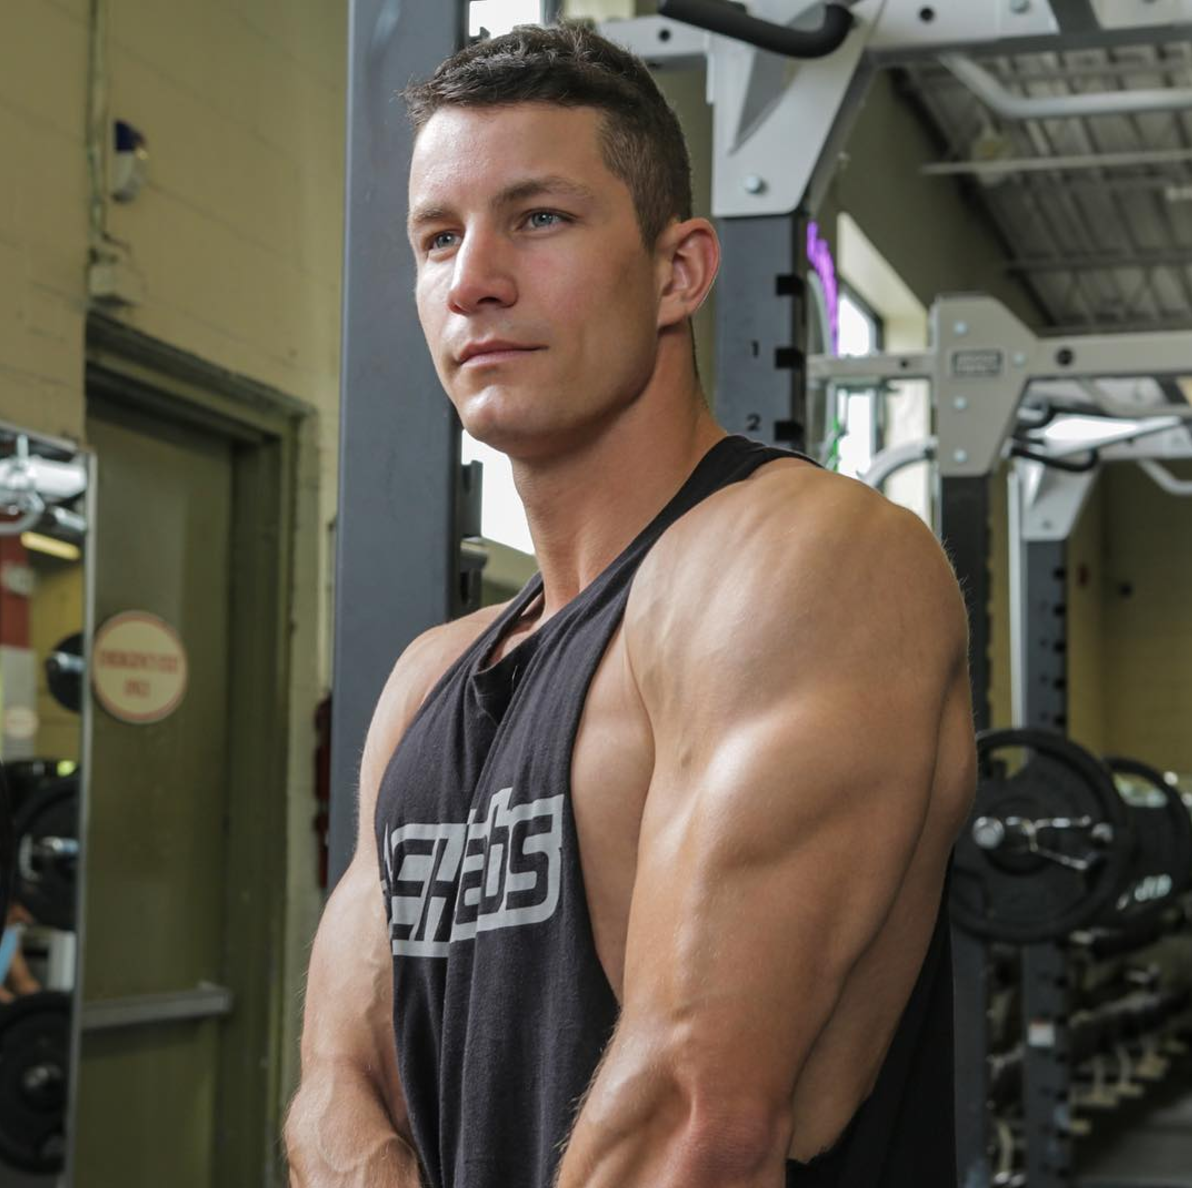 Kyle Grondin Colossus Fitness About Me